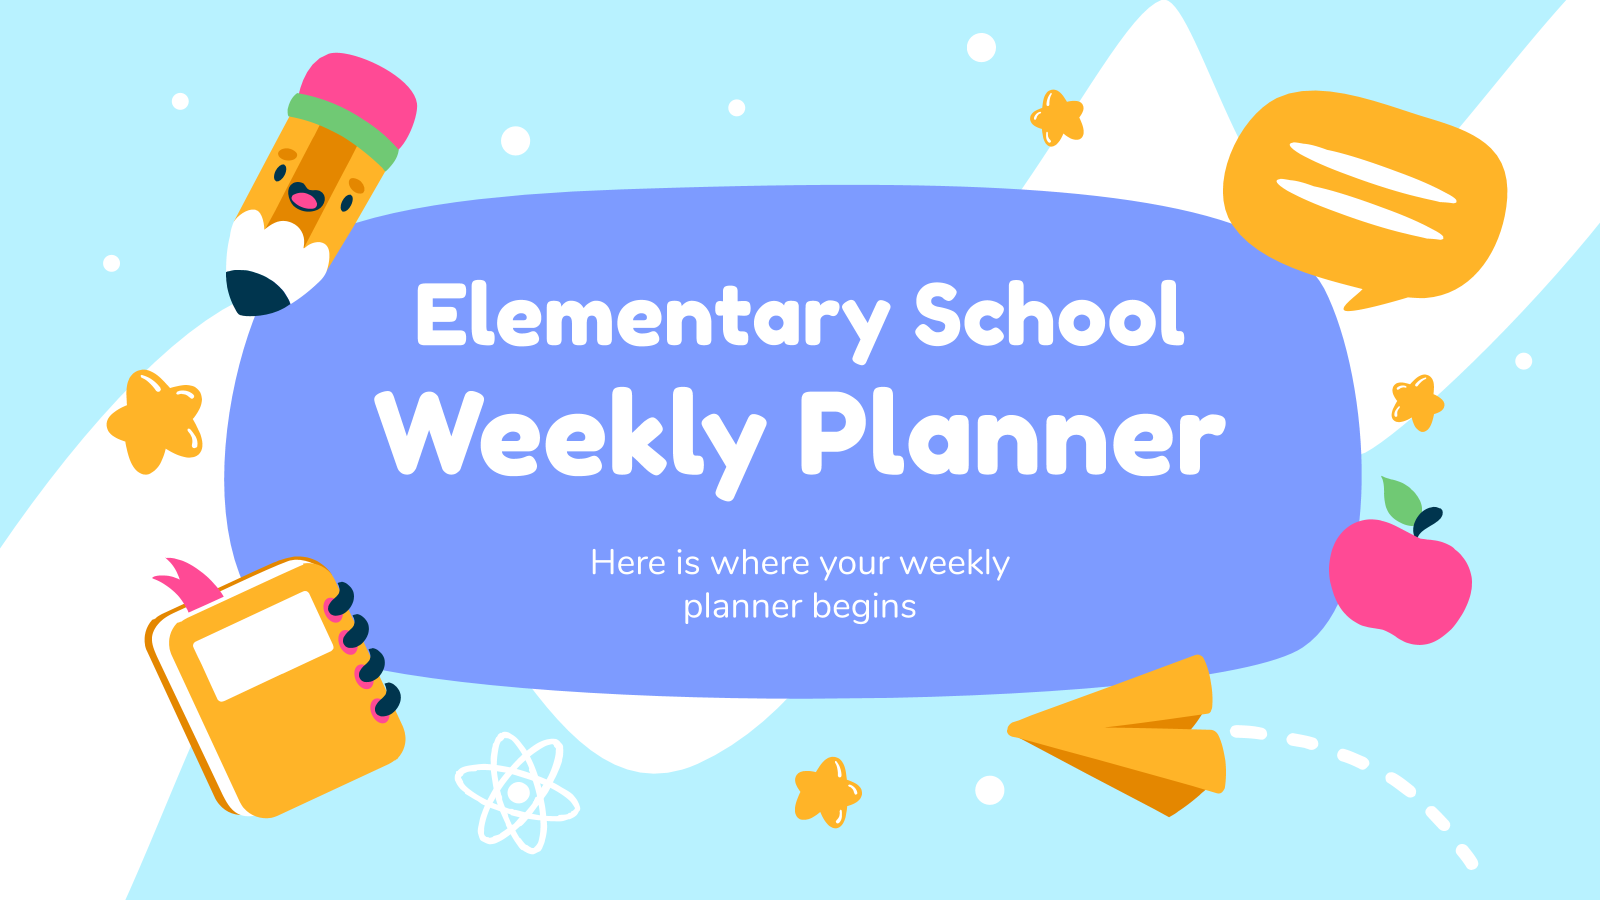 Elementary School Weekly Planner presentation template